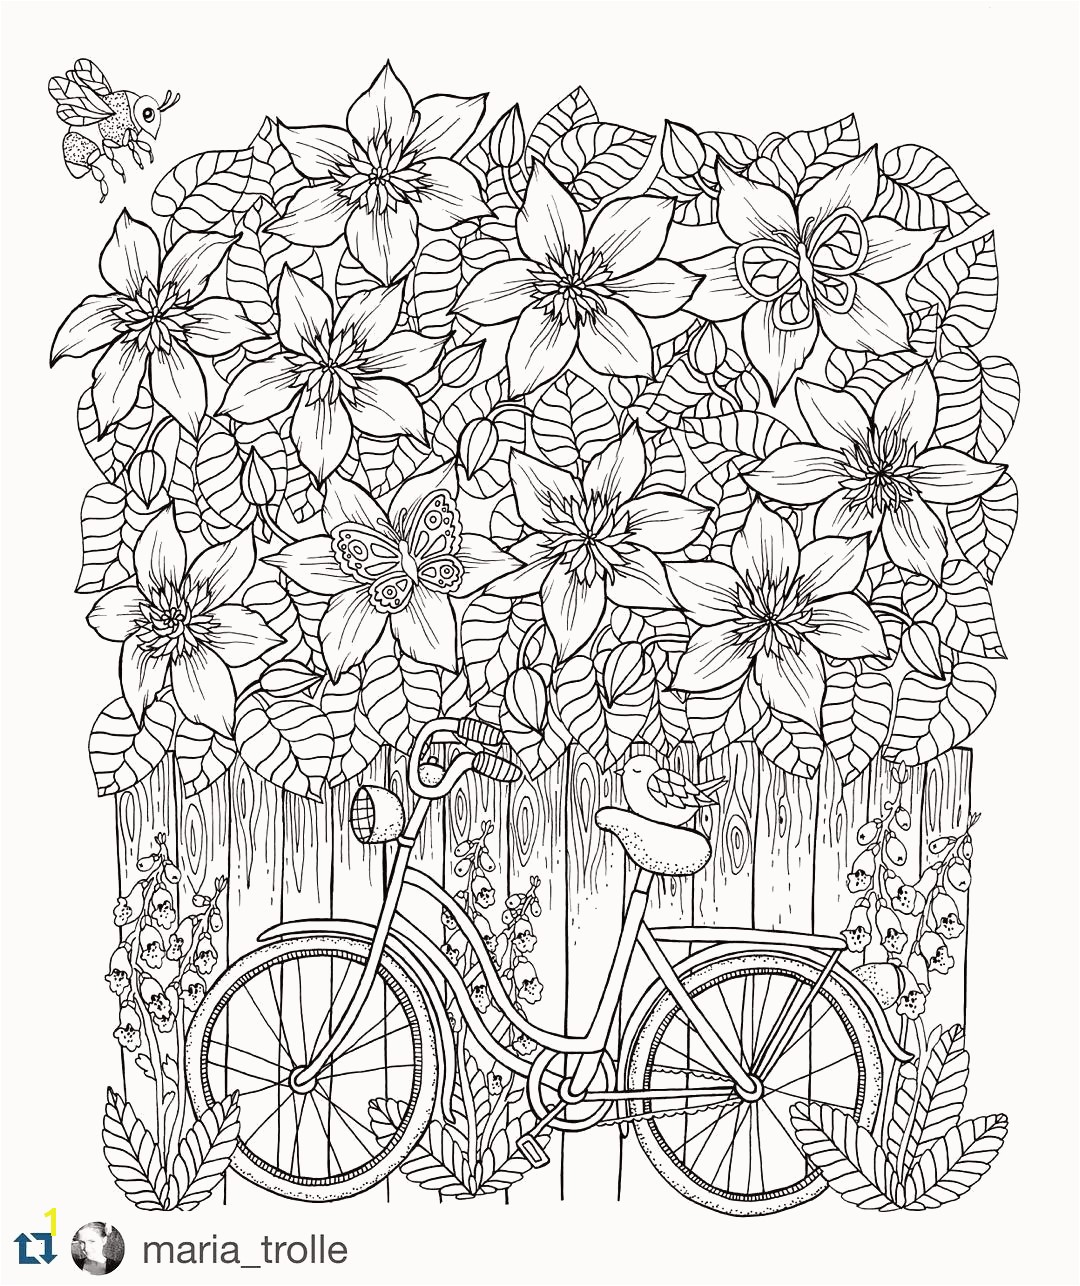 Pbr Coloring Pages Luxury Best Horse Coloring Pages Letramac Pbr Coloring Pages Unique Cool Vases